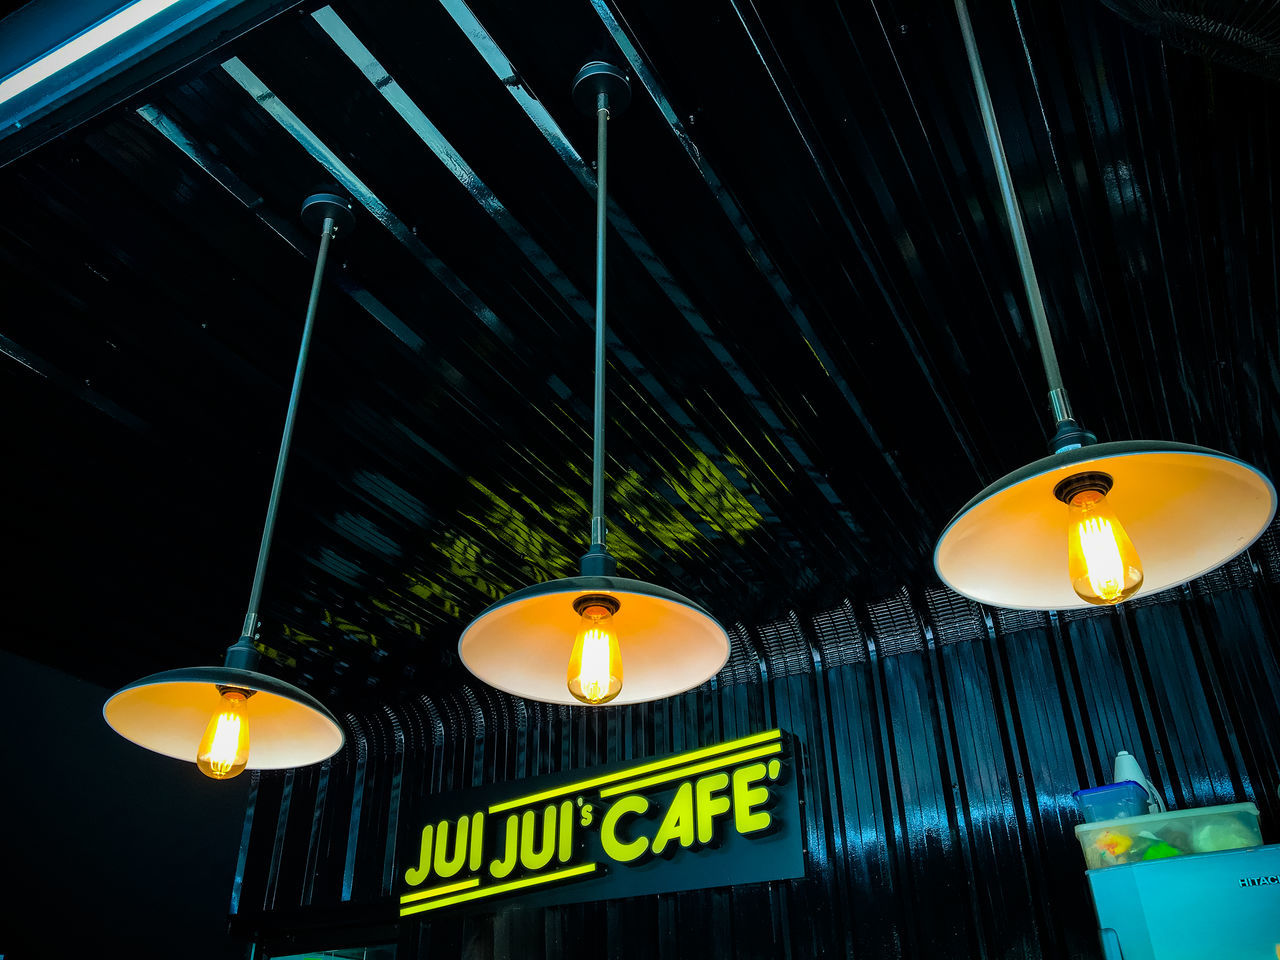 Architecture built structure Ceiling decoration electric lamp electric light electricity glowing Hanging illuminated indoors lamp Lantern light - natural phenomenon light bulb Lighting equipment lit Low angle view night Street Light cafe coffee break